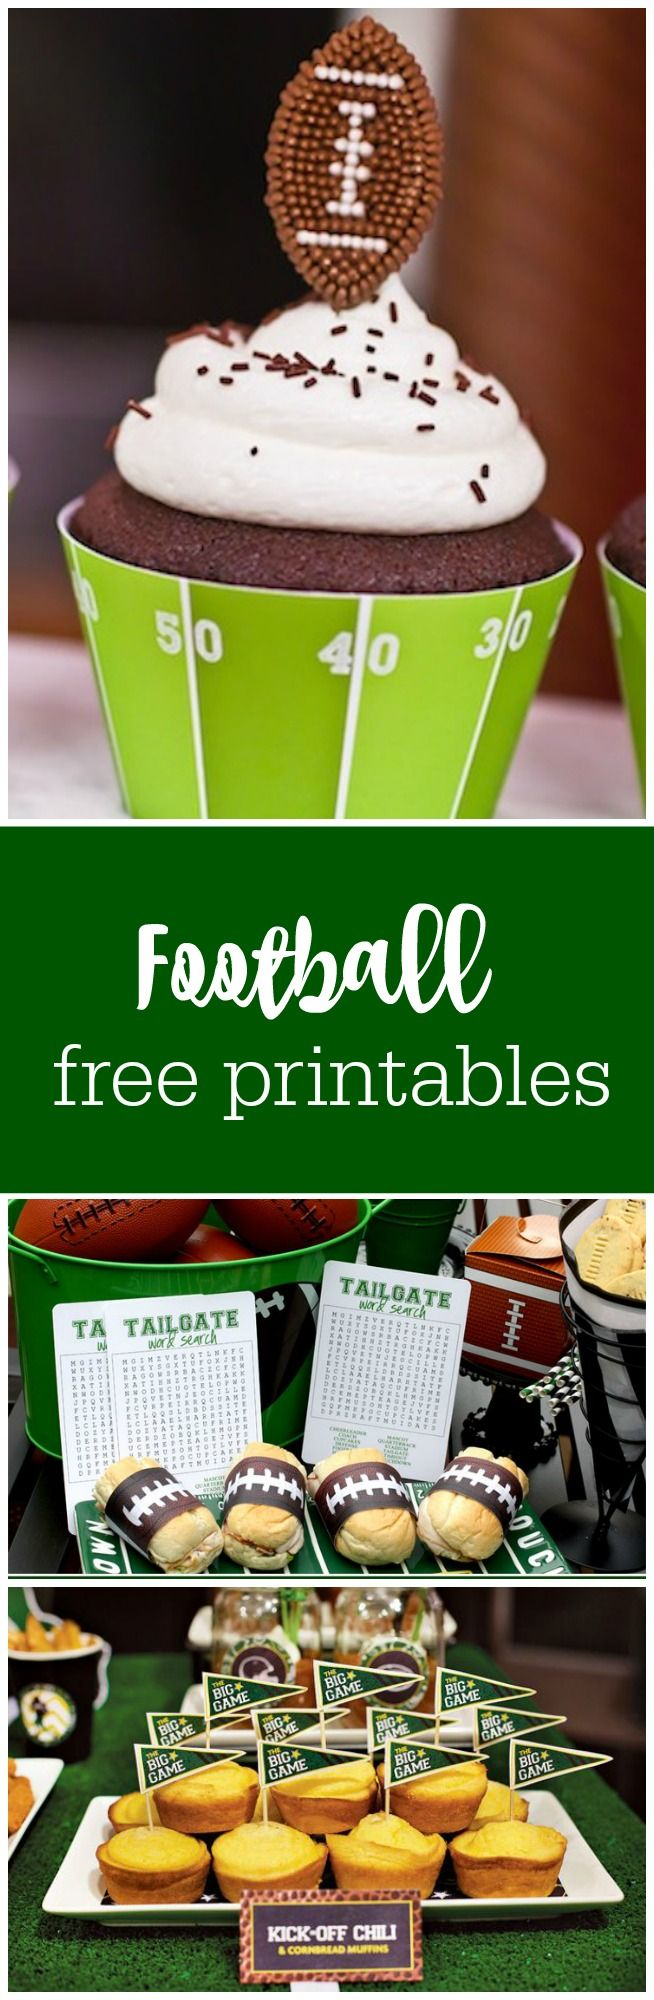 Football and tailgating free printables curated by The Party Teacher | http://thepartyteacher.com/2013/02/01/freebie-friday-free-football-printables/